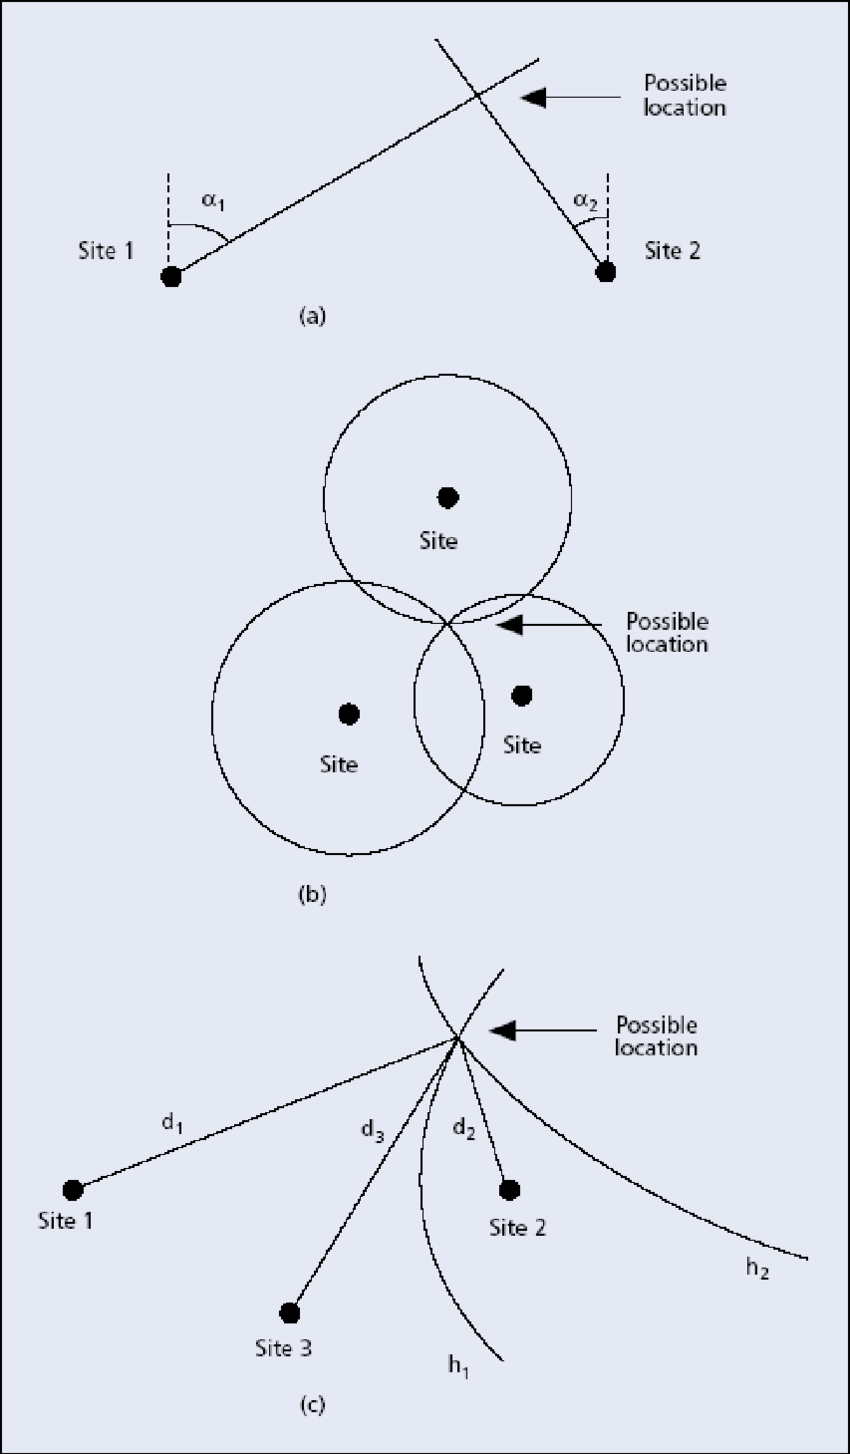 medium resolution of 1 position determination methods a angle of arrival aoa b